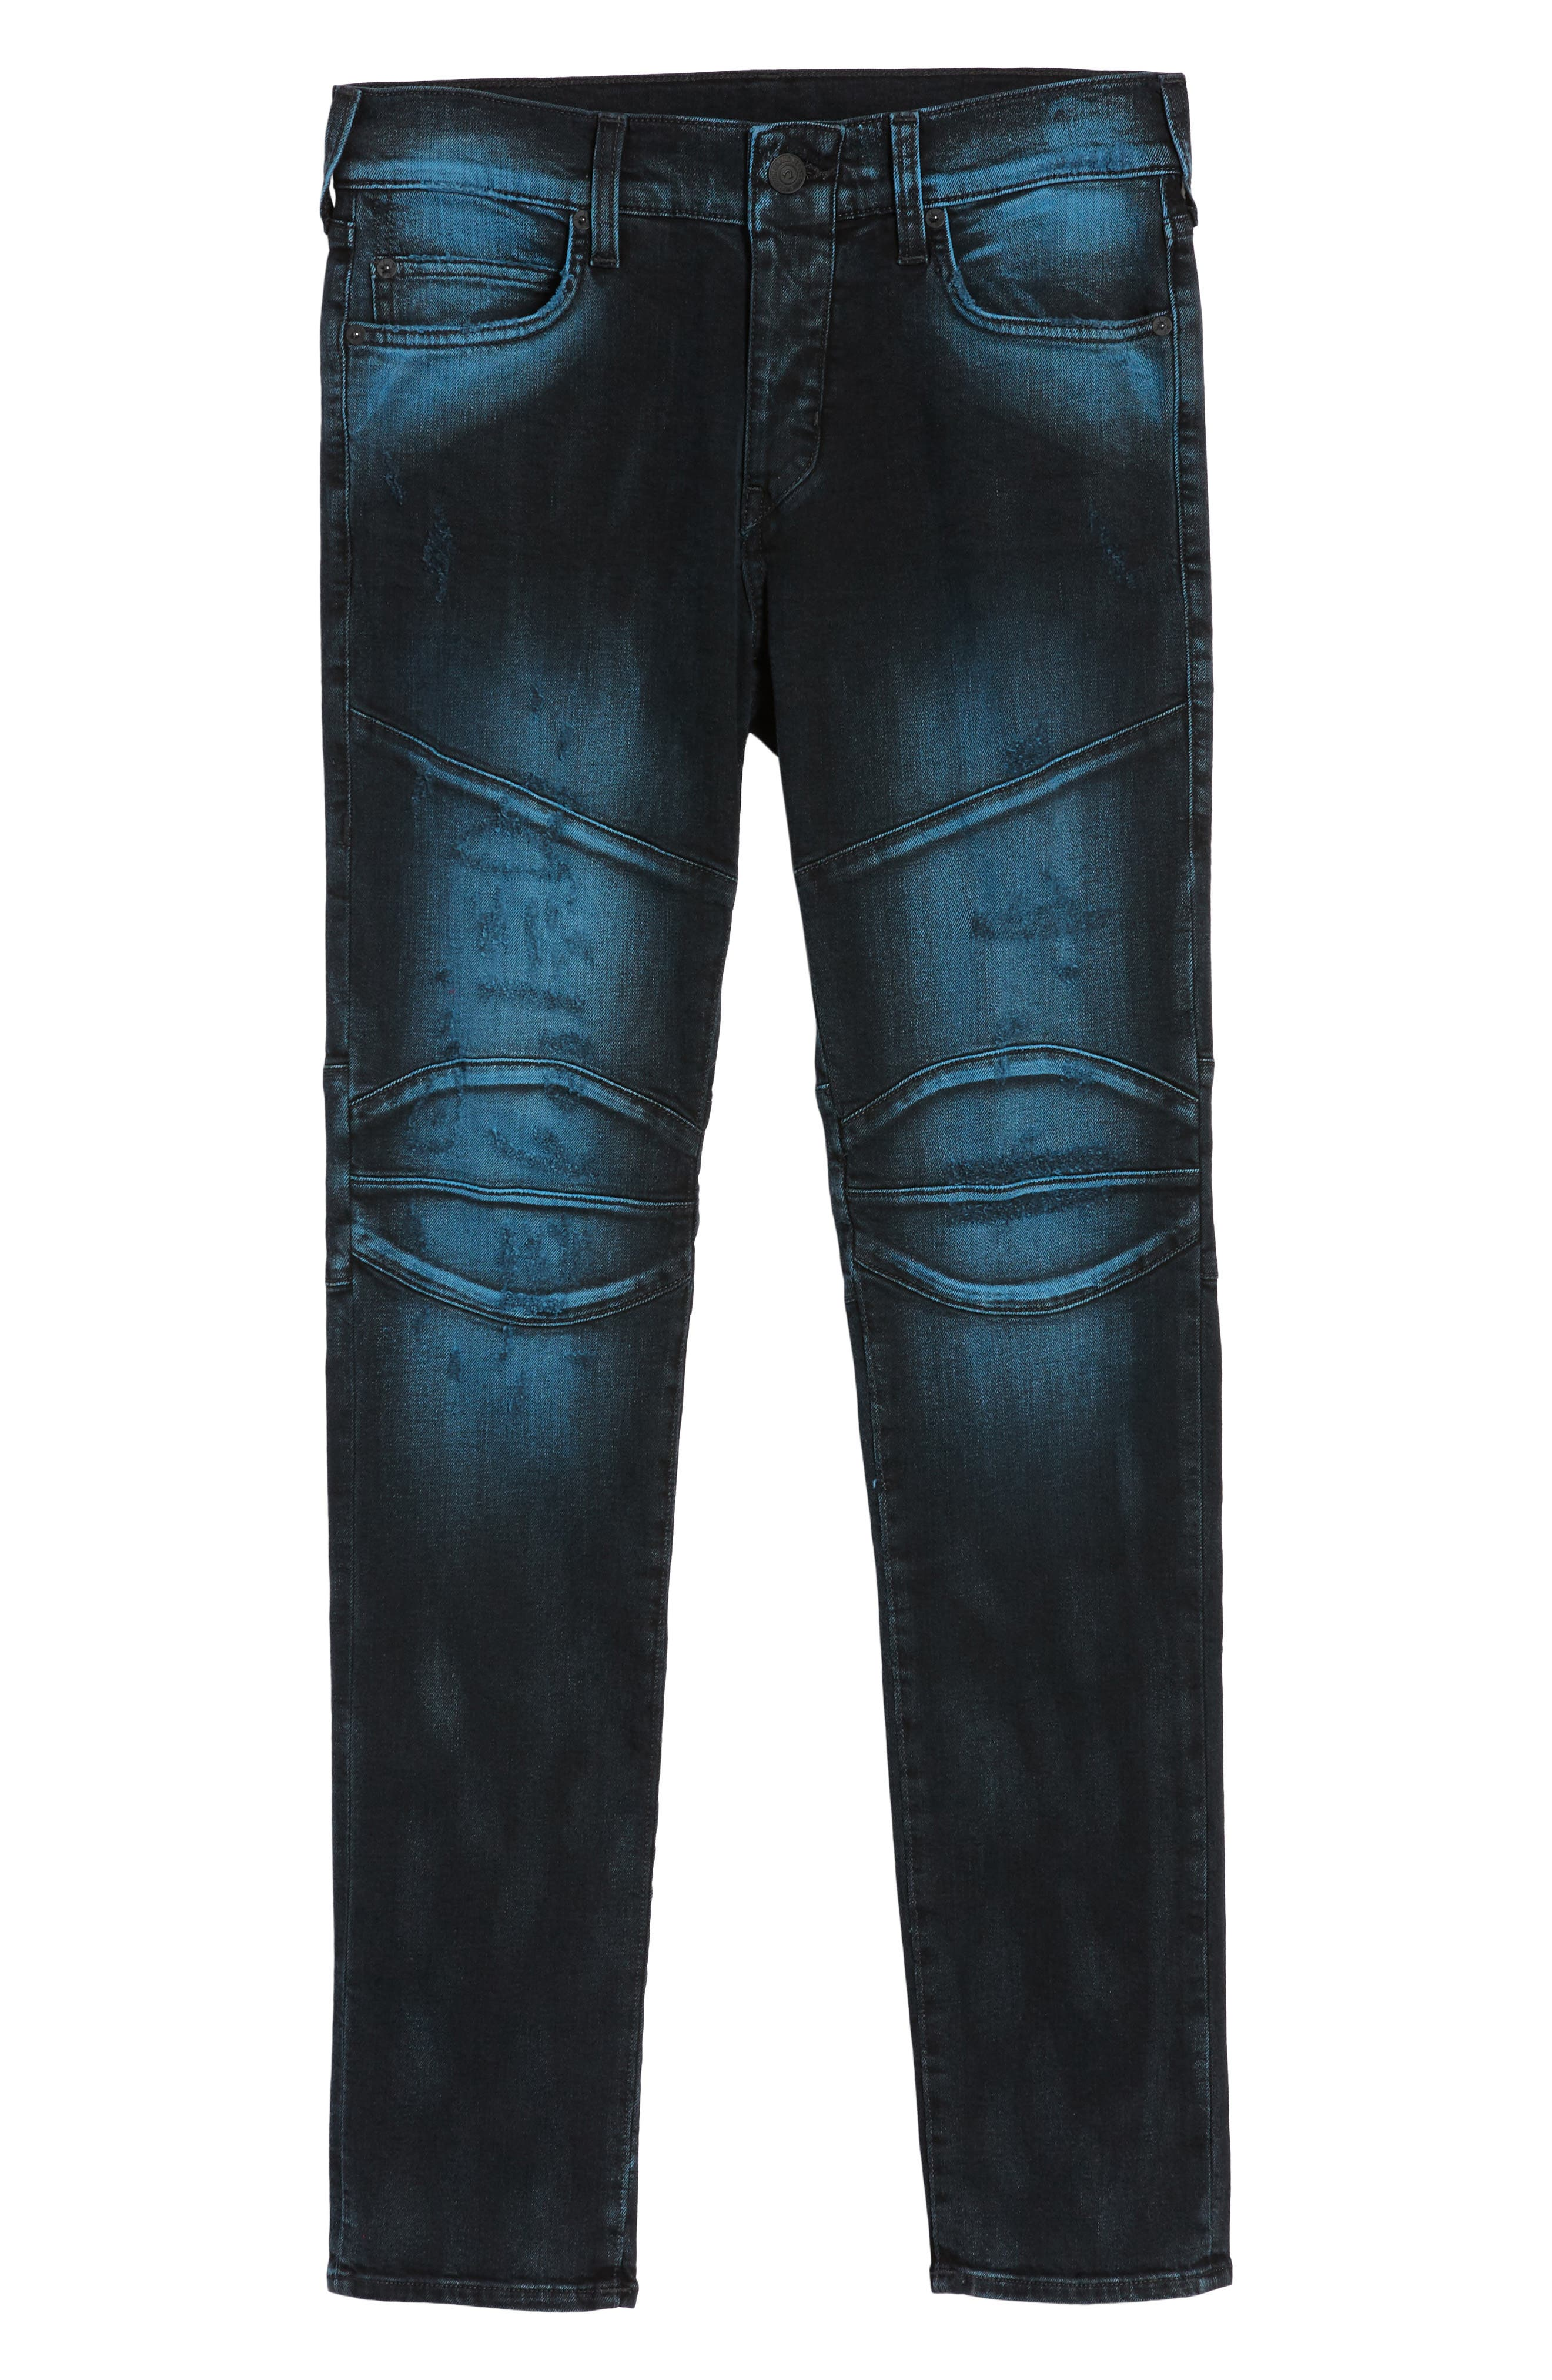 Rocco Skinny Fit Jeans,                             Alternate thumbnail 6, color,                             Blue Blaze